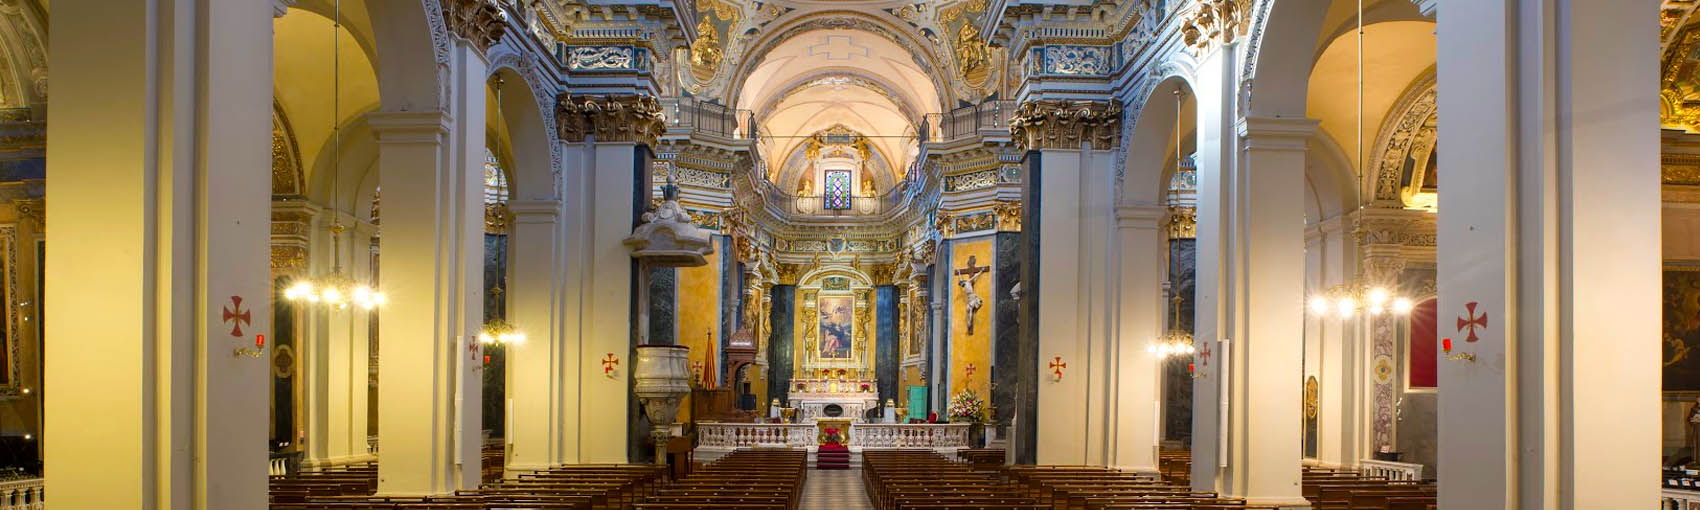 cathedrale-nice-interieur